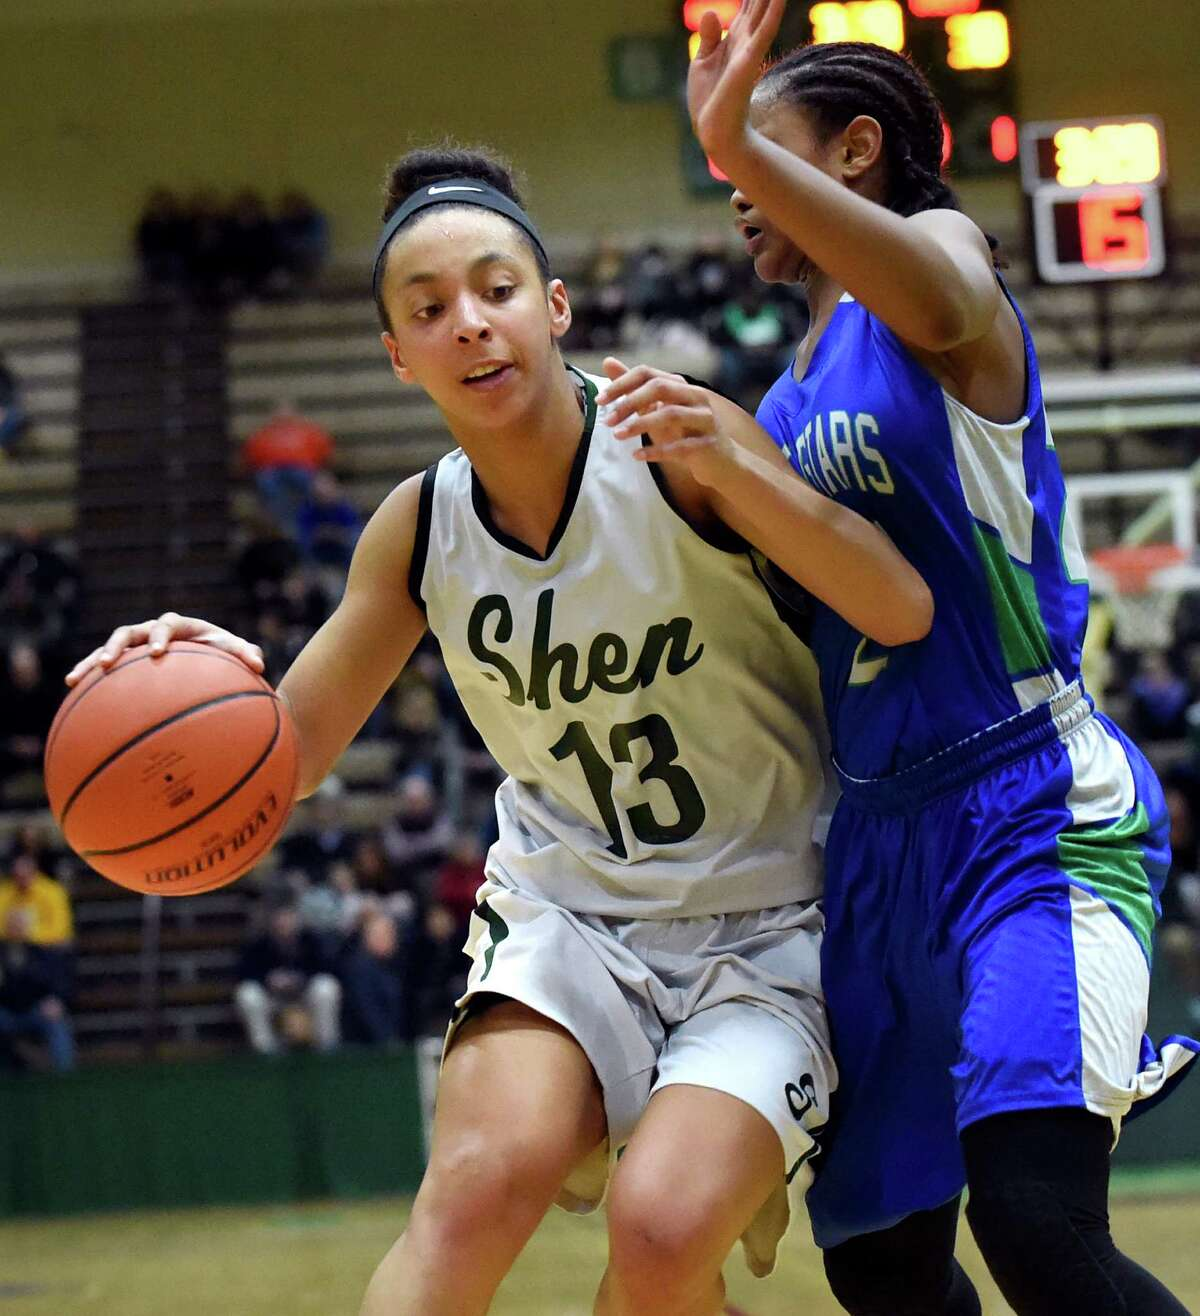 Shen's Sydney Brown, left, works to get past Cicero's Amani Free during their Class AA basketball regional final on Saturday, March 5, 2016, at Hudson Valley Community College in Troy, N.Y. (Cindy Schultz / Times Union)